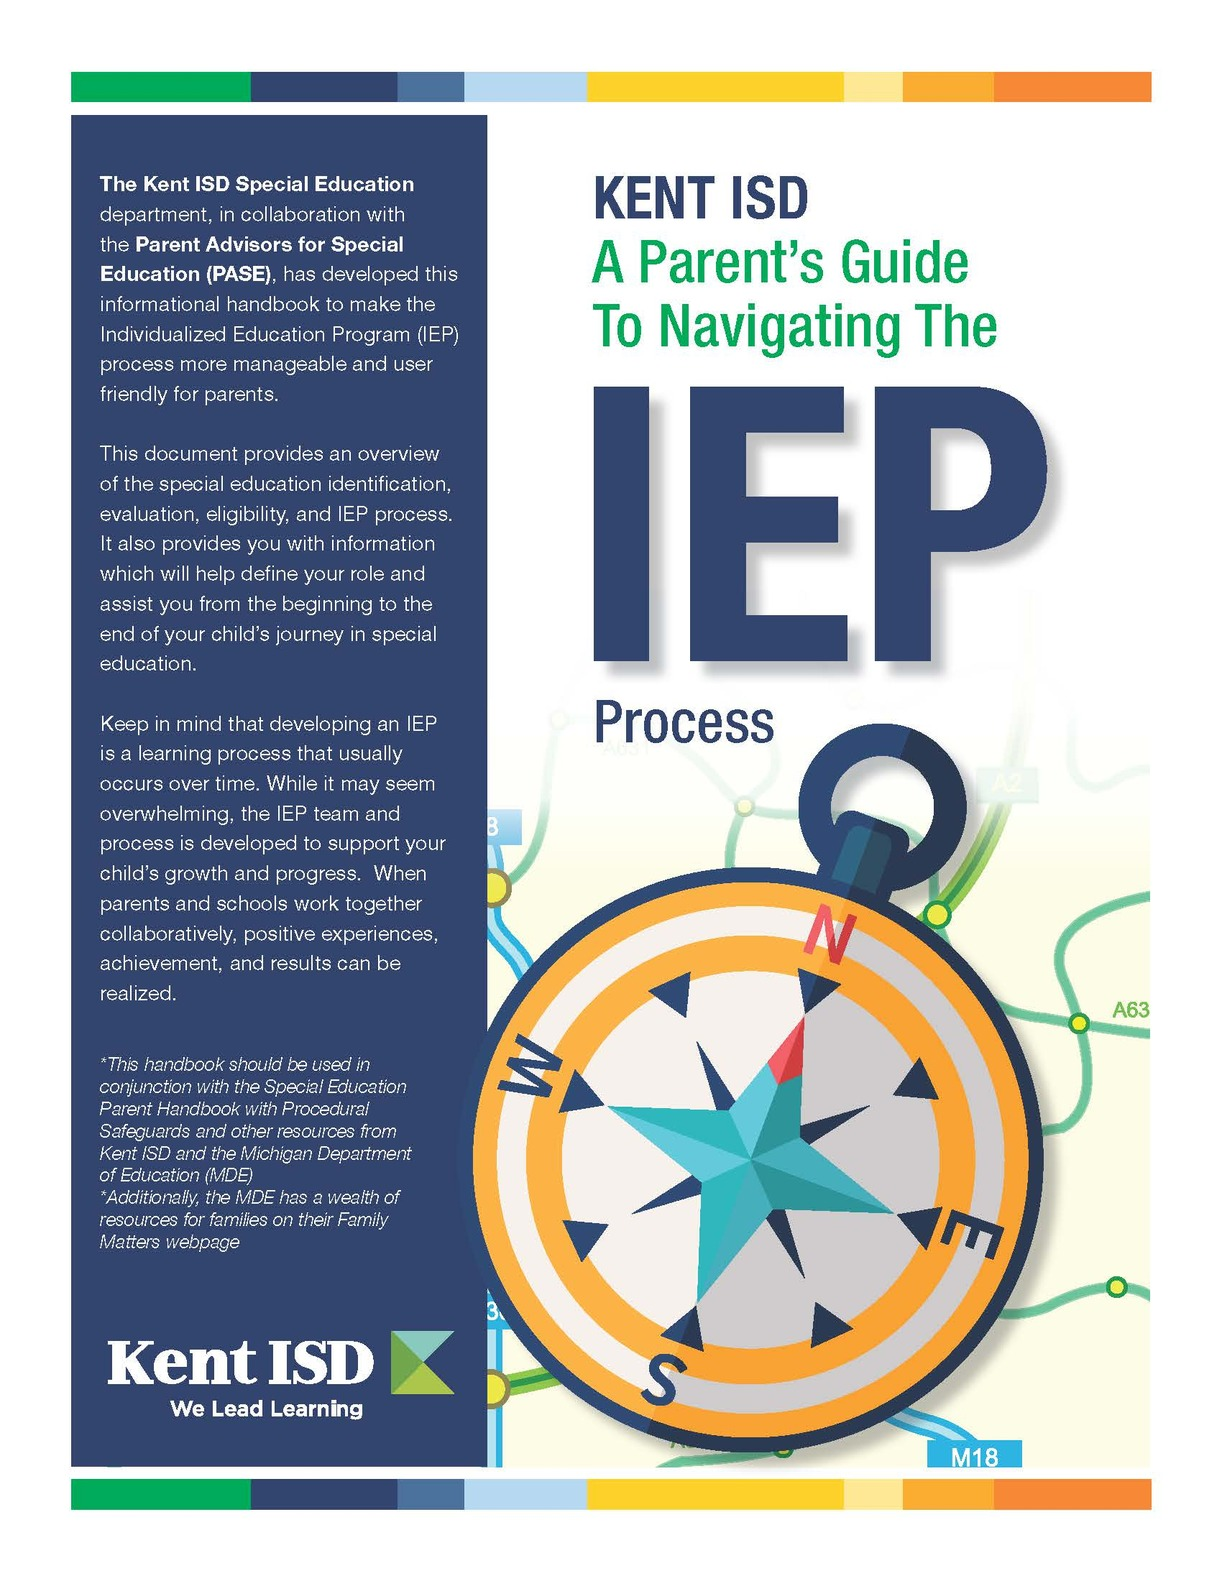 Snapshot of Parent Guide Cover